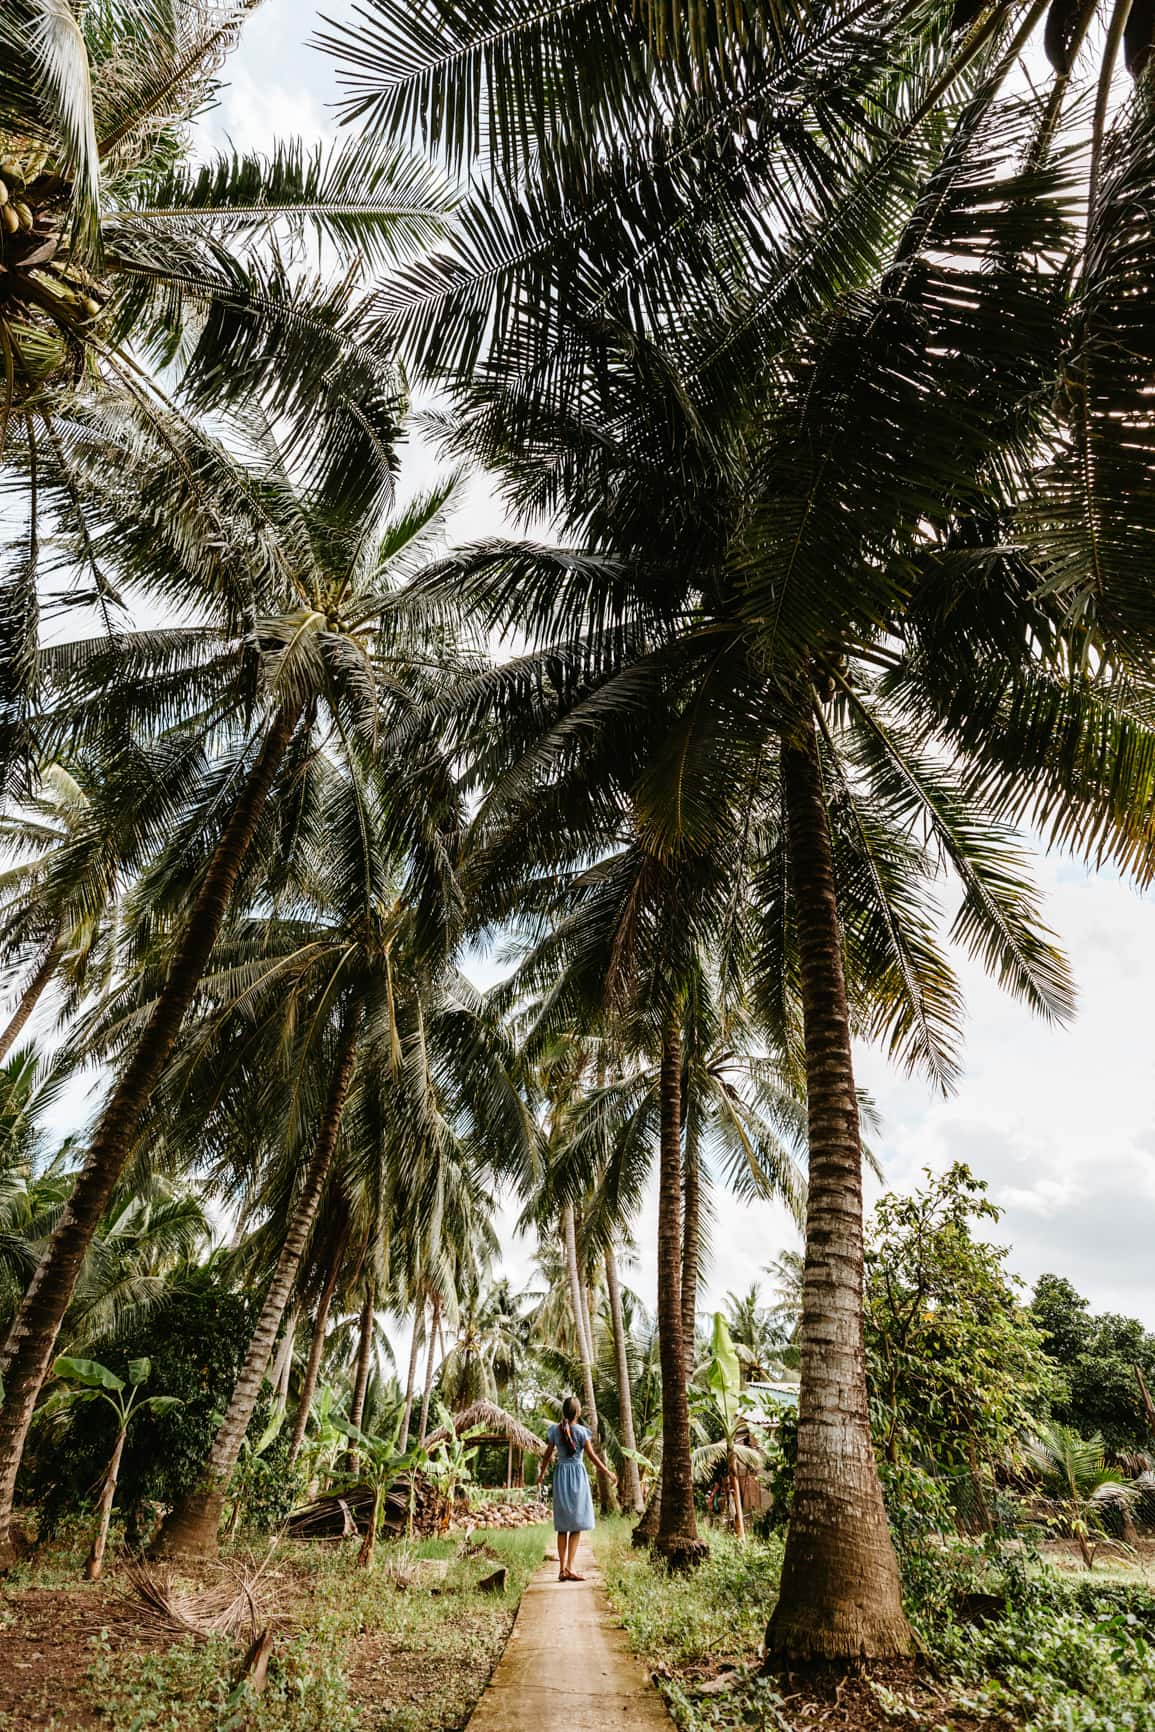 coconut trees in the mekong delta